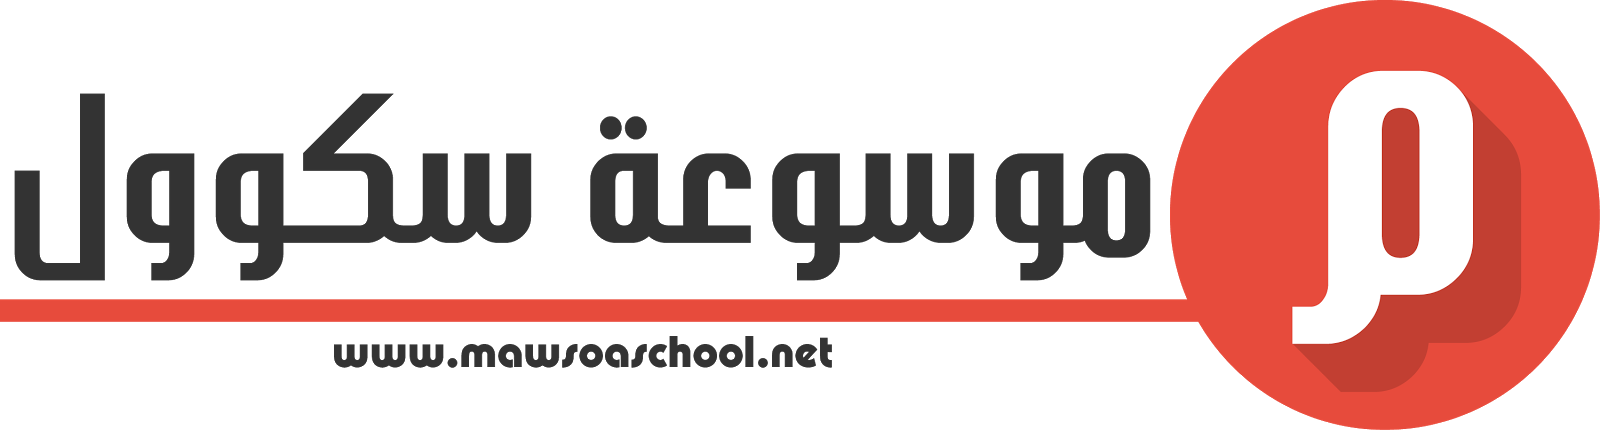 موسوعة سكوول | Mawsoa School - MS